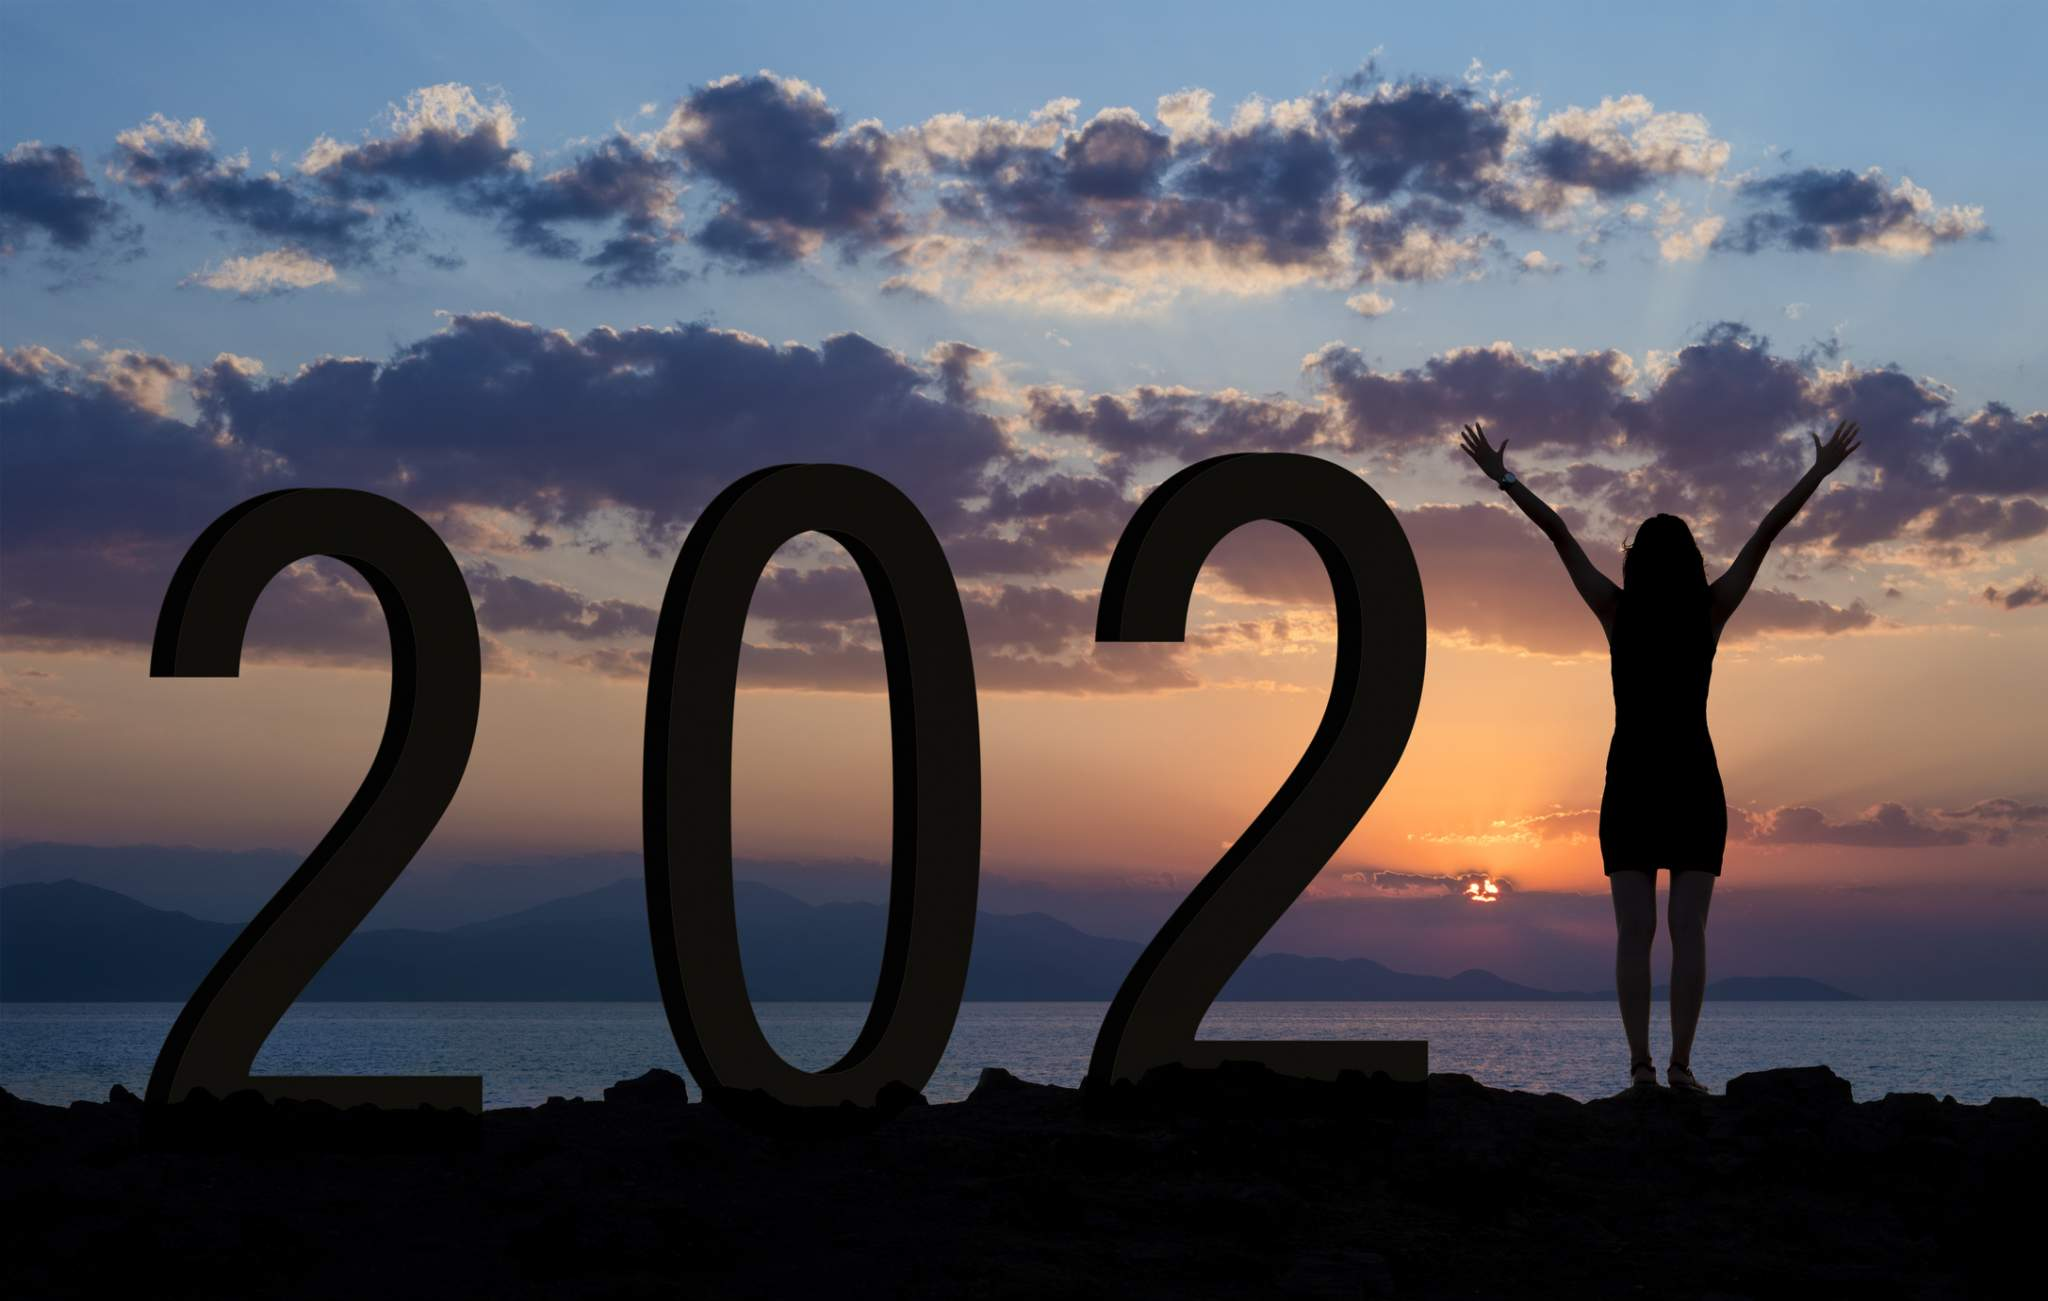 Sunrise Calendar 2021 Get Ready for the New Year With a Custom 2021 Calendar |